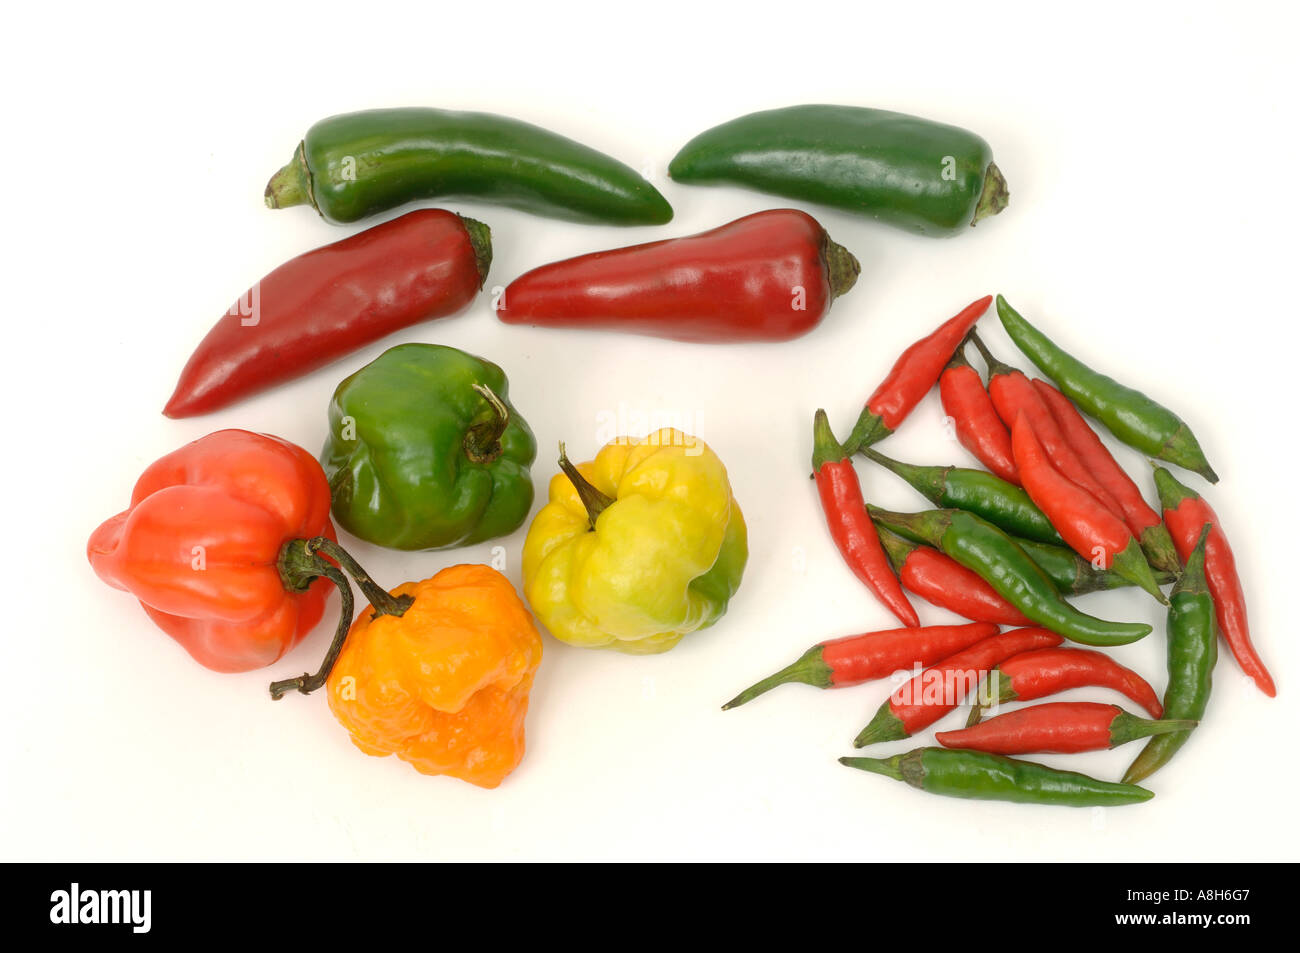 Vegetable produce typical supermarket bought mixed types of chilli peppers - Stock Image